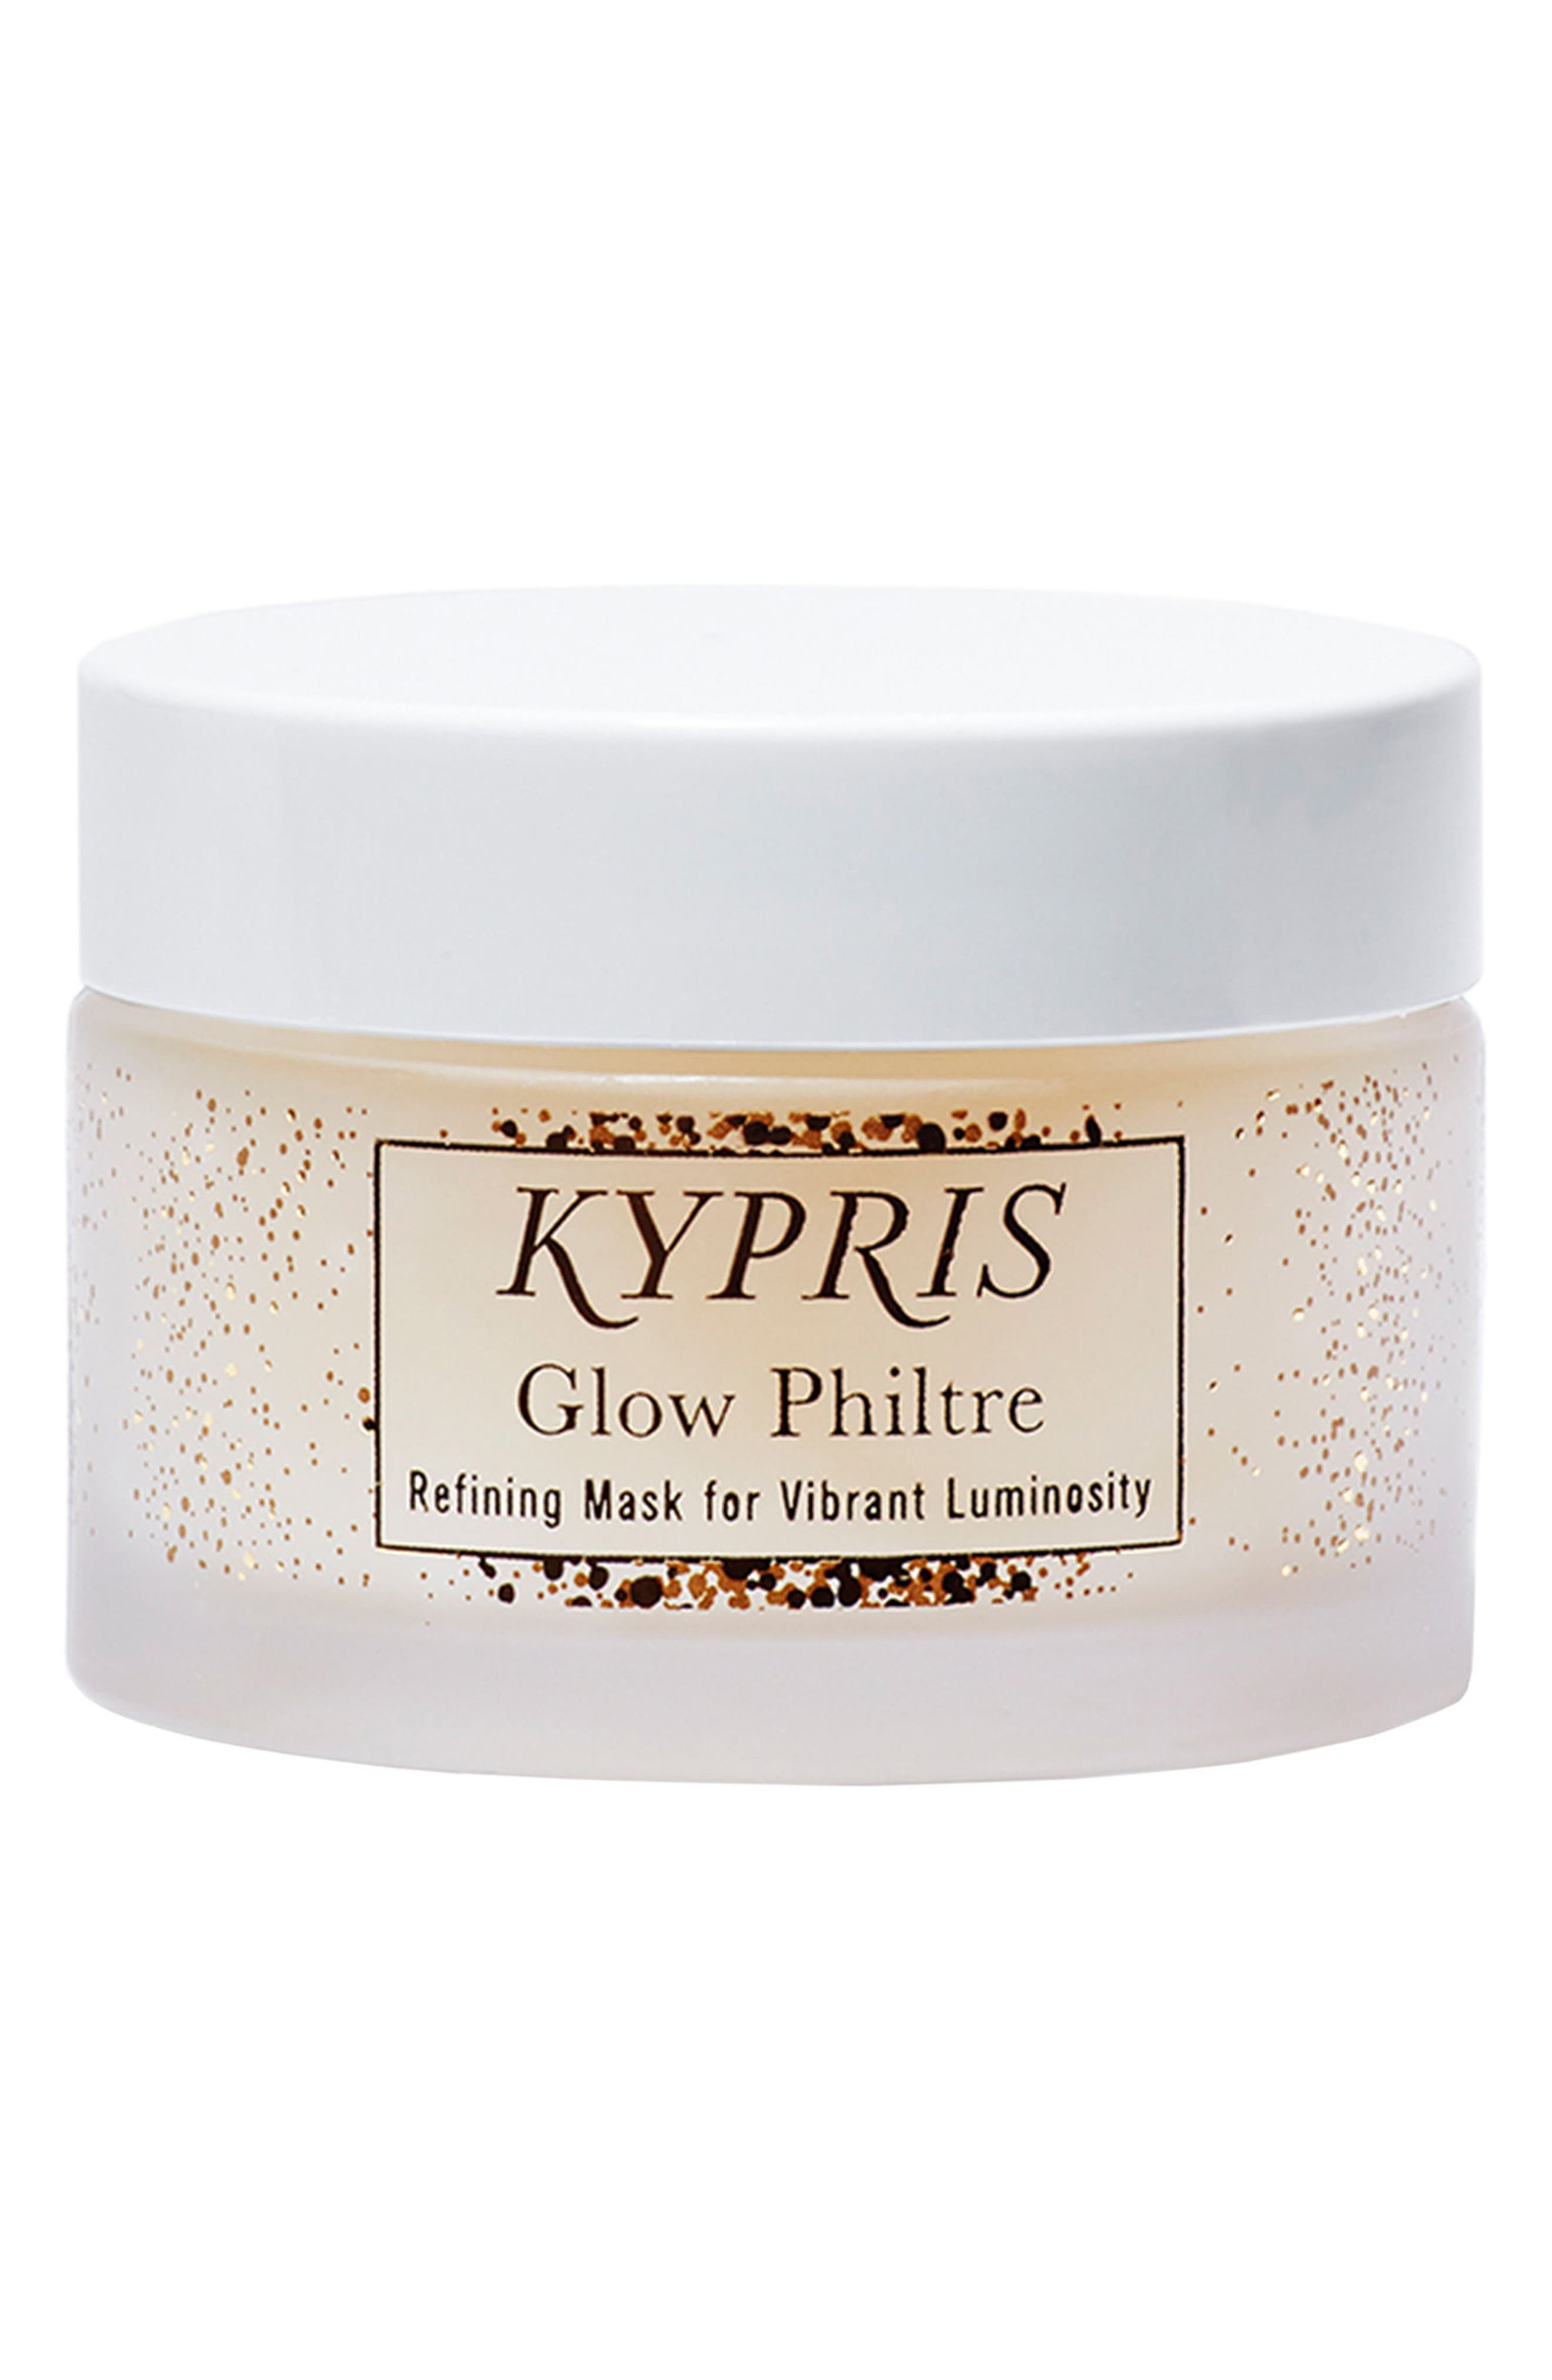 KYPRIS BEAUTY Glow Philtre Refining Mask for Vibrant Luminosity, Main, color, NO COLOR